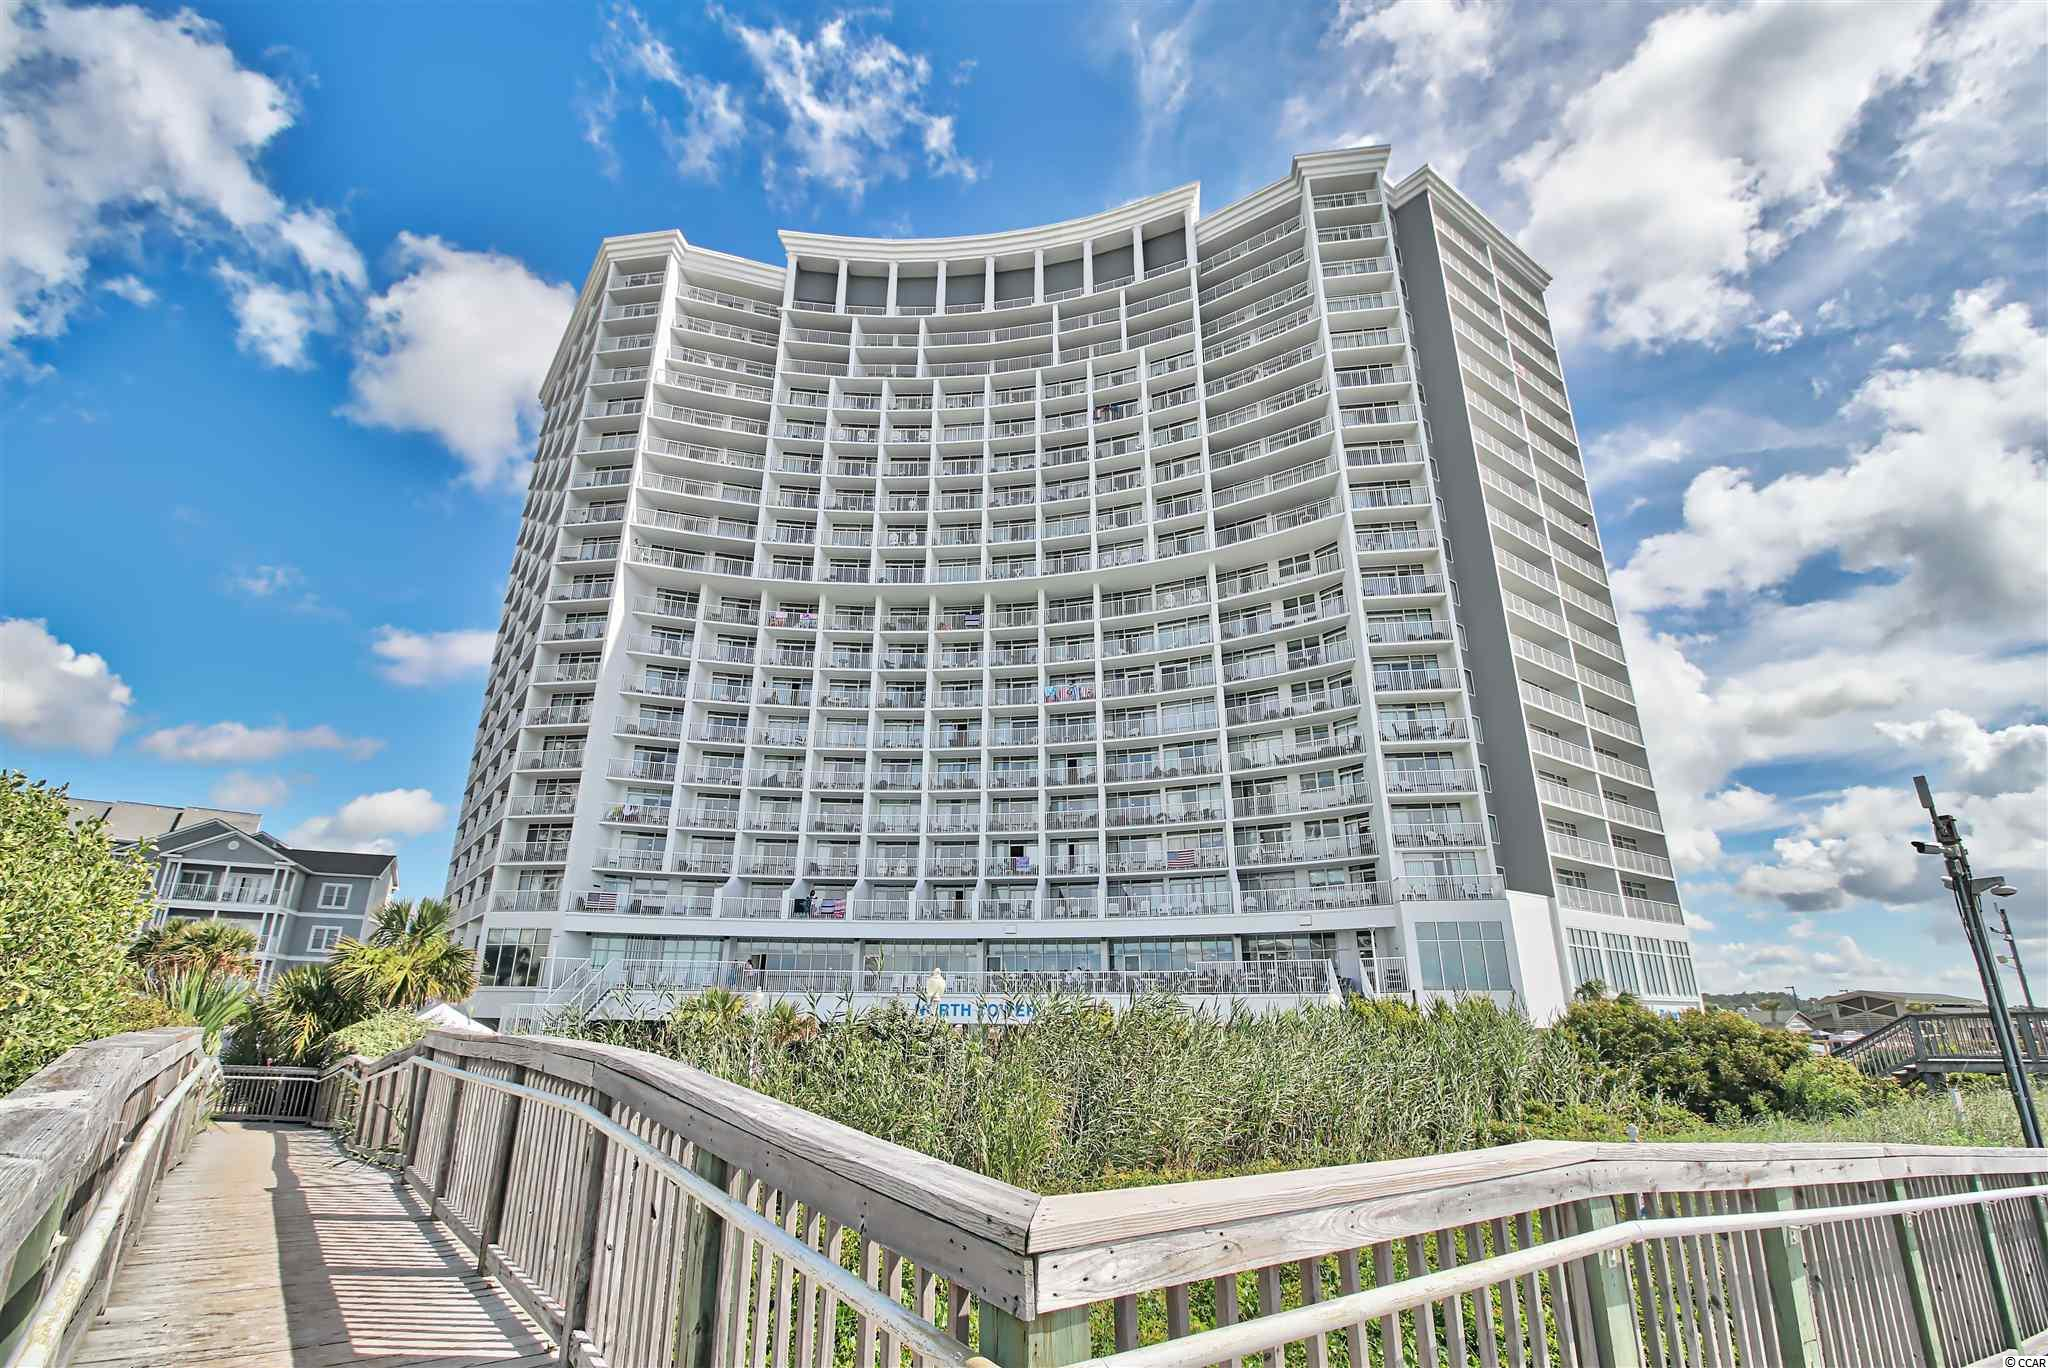 The one you've been waiting on! This 1 bedroom ocean front unit is in one of the most desirable and secluded locations of Myrtle Beach. This unit is one of the larger one bedroom units offered in the North Tower of Seawatch. Walking into your slice of paradise you are welcomed by 2 queen beds. Walking past, you enter your updated kitchen with a stone look apoxy countertop for easy cleanup allowing more time on the beach! When you're ready to leave the white sands just steps from you front door, you can enjoy the sounds of the crashing waves from your living room with a view for miles over the Atlantic Ocean. Schedule your tour today!